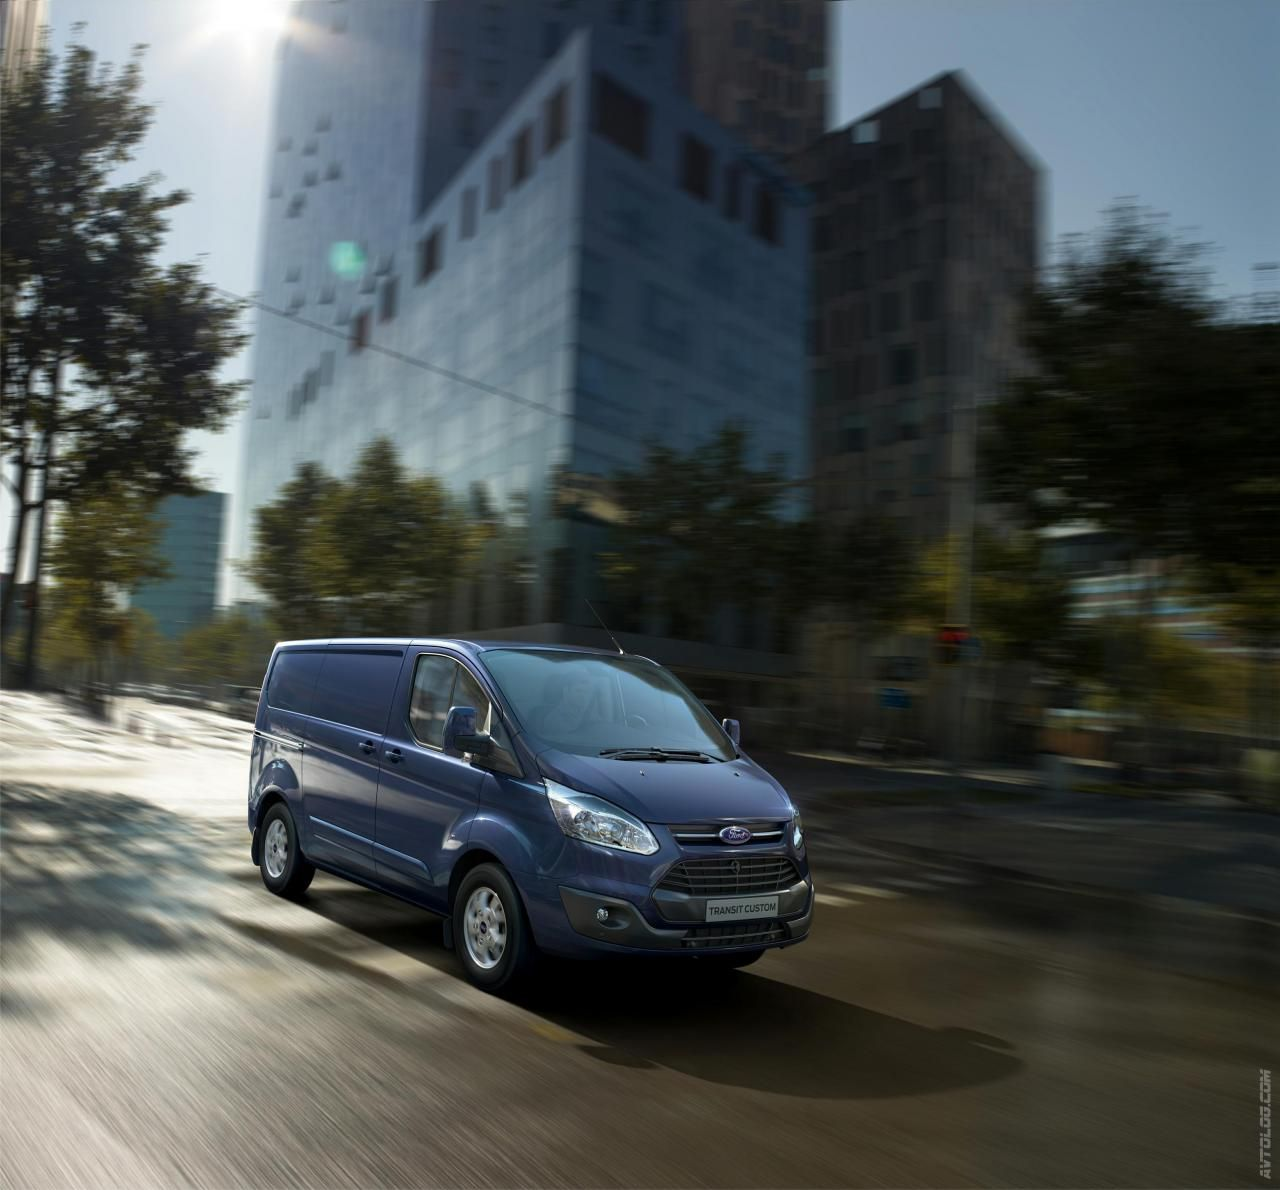 Ford tourneo courier pictures to pin on pinterest - Find This Pin And More On Ford By Overboost_today